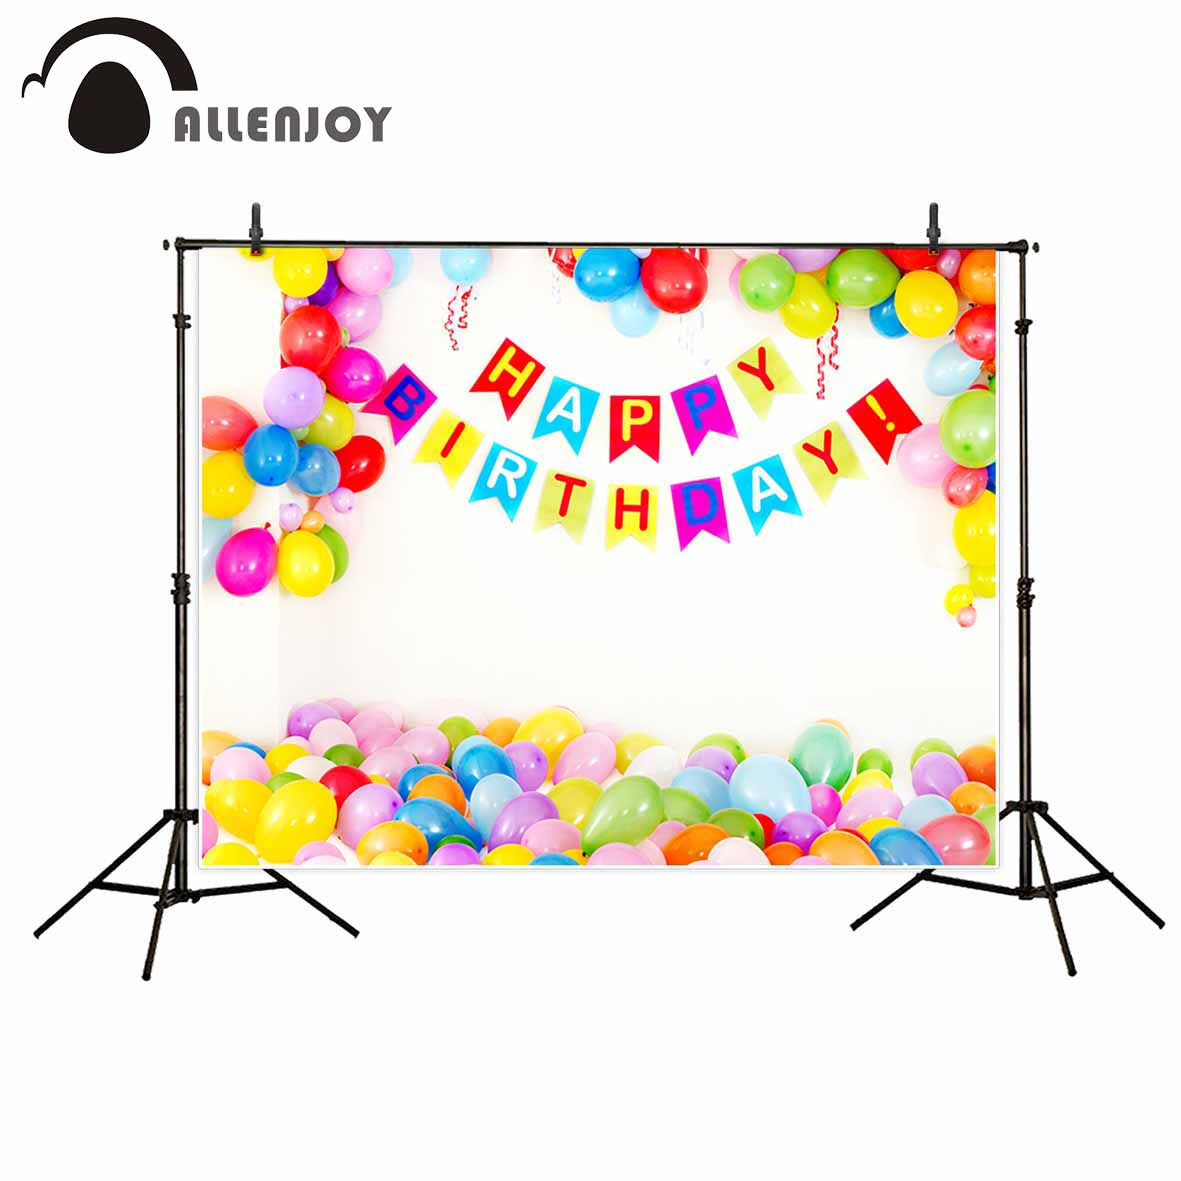 Allenjoy photographic background Decorative balloon white children birthday new backdrop photocall photo printer customize